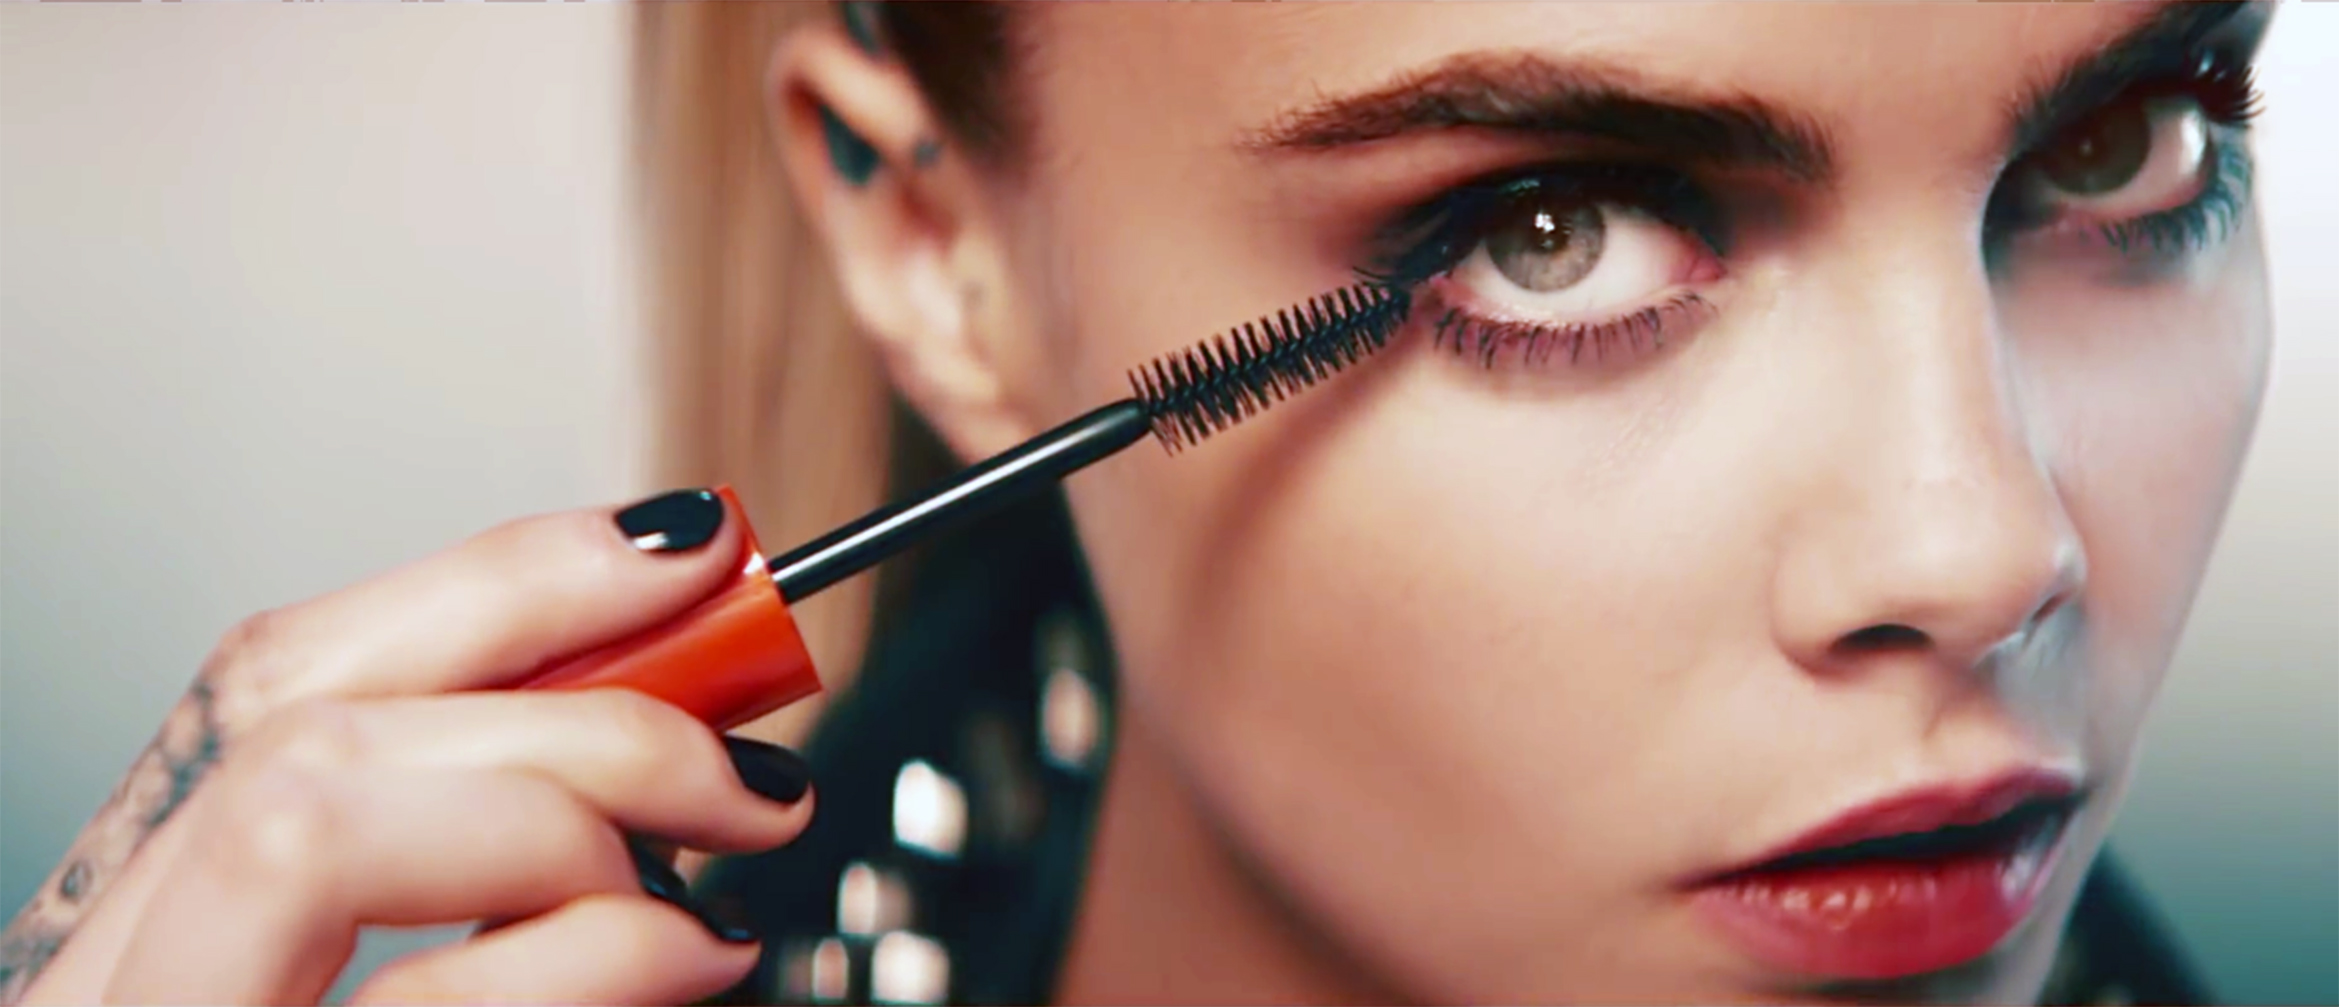 English fashion mode Cara Delevingne stars in Rimmel London 'Scandaleys Reloaded Mascara' 2016 advertising campaign., Image: 303155471, License: Rights-managed, Restrictions: EDITORIAL USE ONLY, Model Release: no, Credit line: Profimedia, Balawa Pics